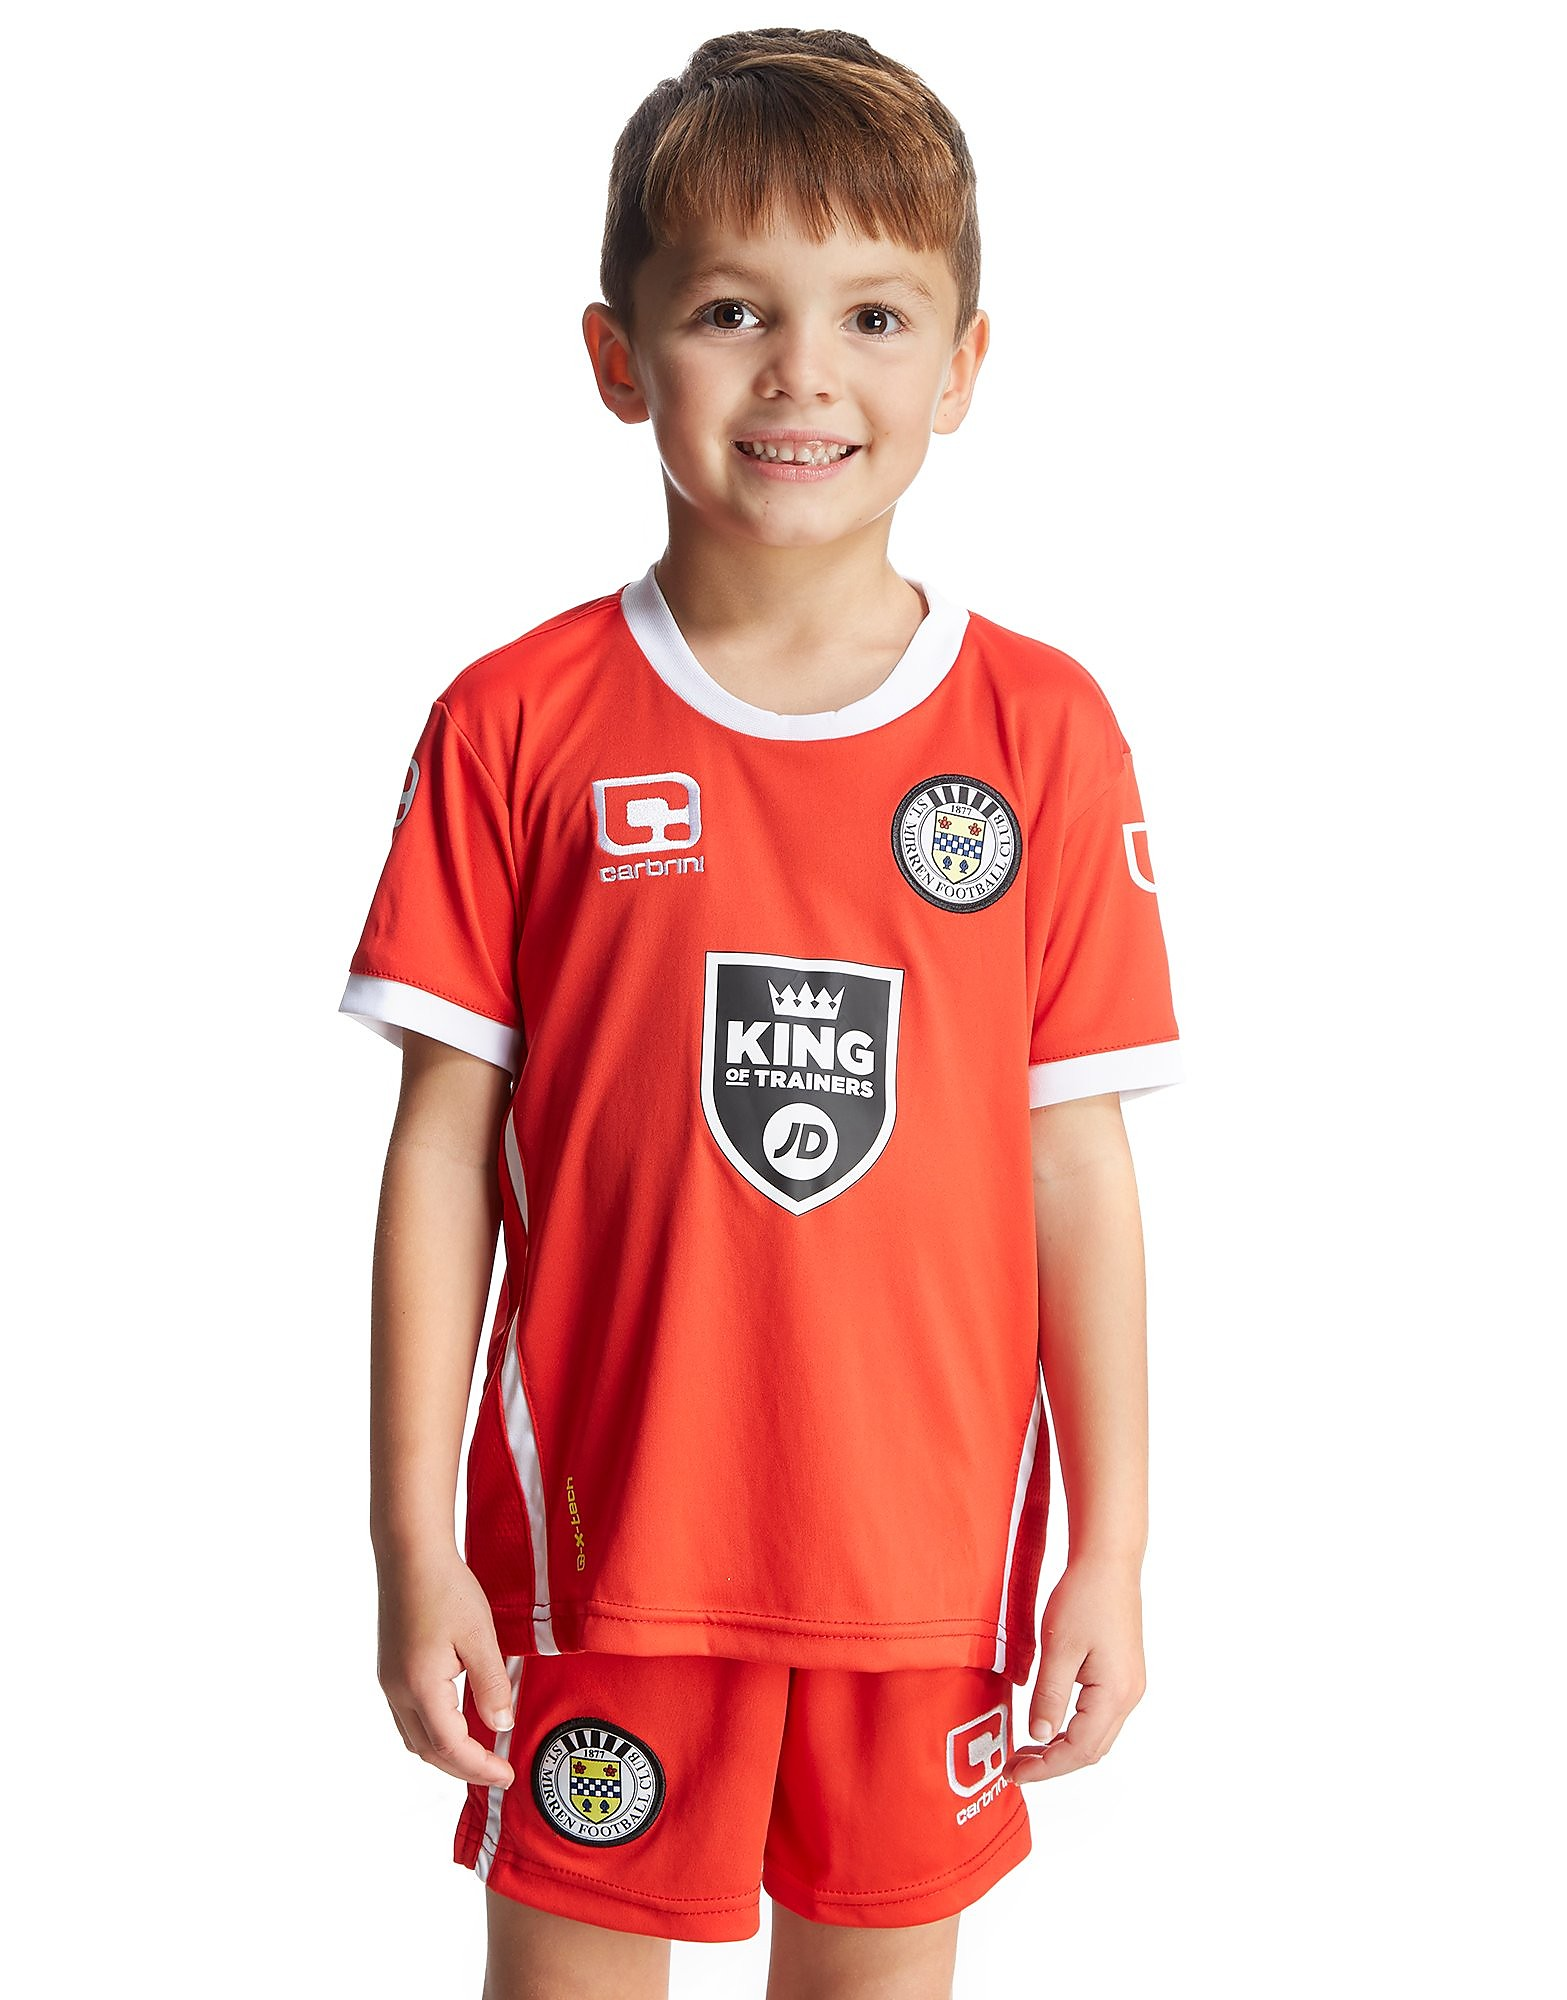 Carbrini St. Mirren 2016/17 Third Kit Children